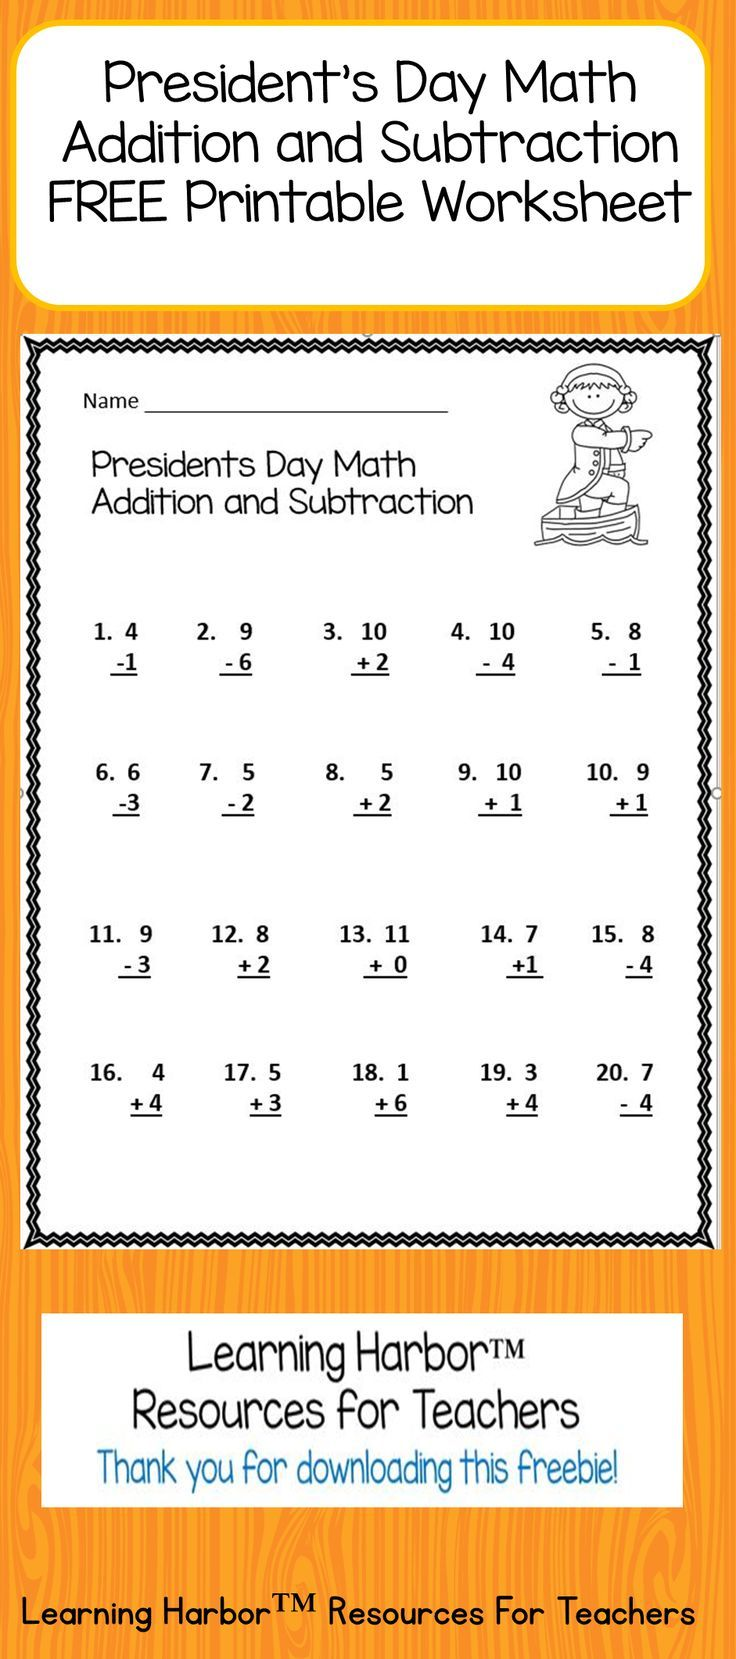 This Presidents Day math resource is great for bell ringers, morning work, sub tub or anytime you need a quick activity.